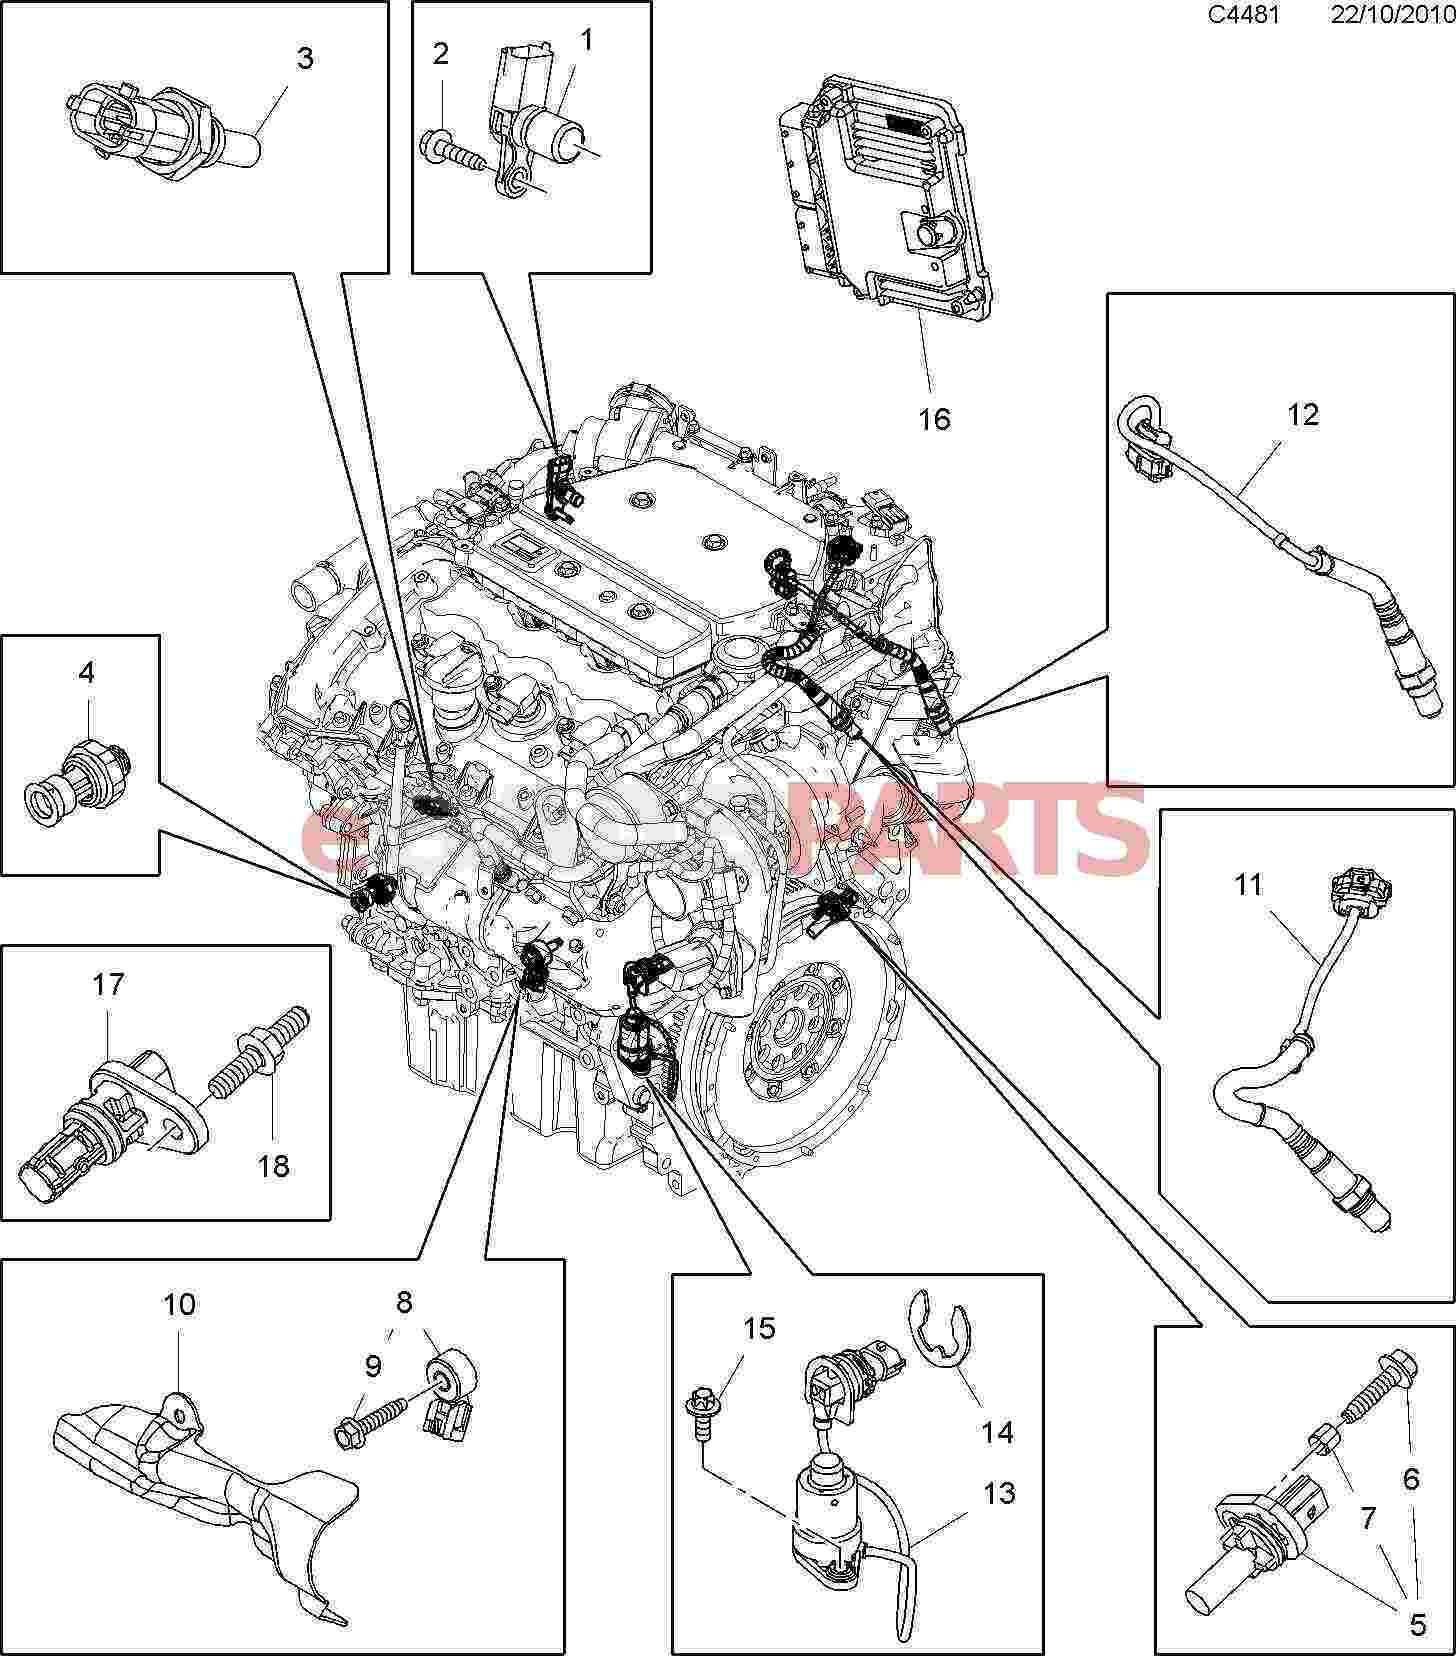 2007 saab 9 5 wiring diagram wiring diagram 2004 Saab 9 5 Wiring Diagram 2004 saab 9 3 wiring diagram